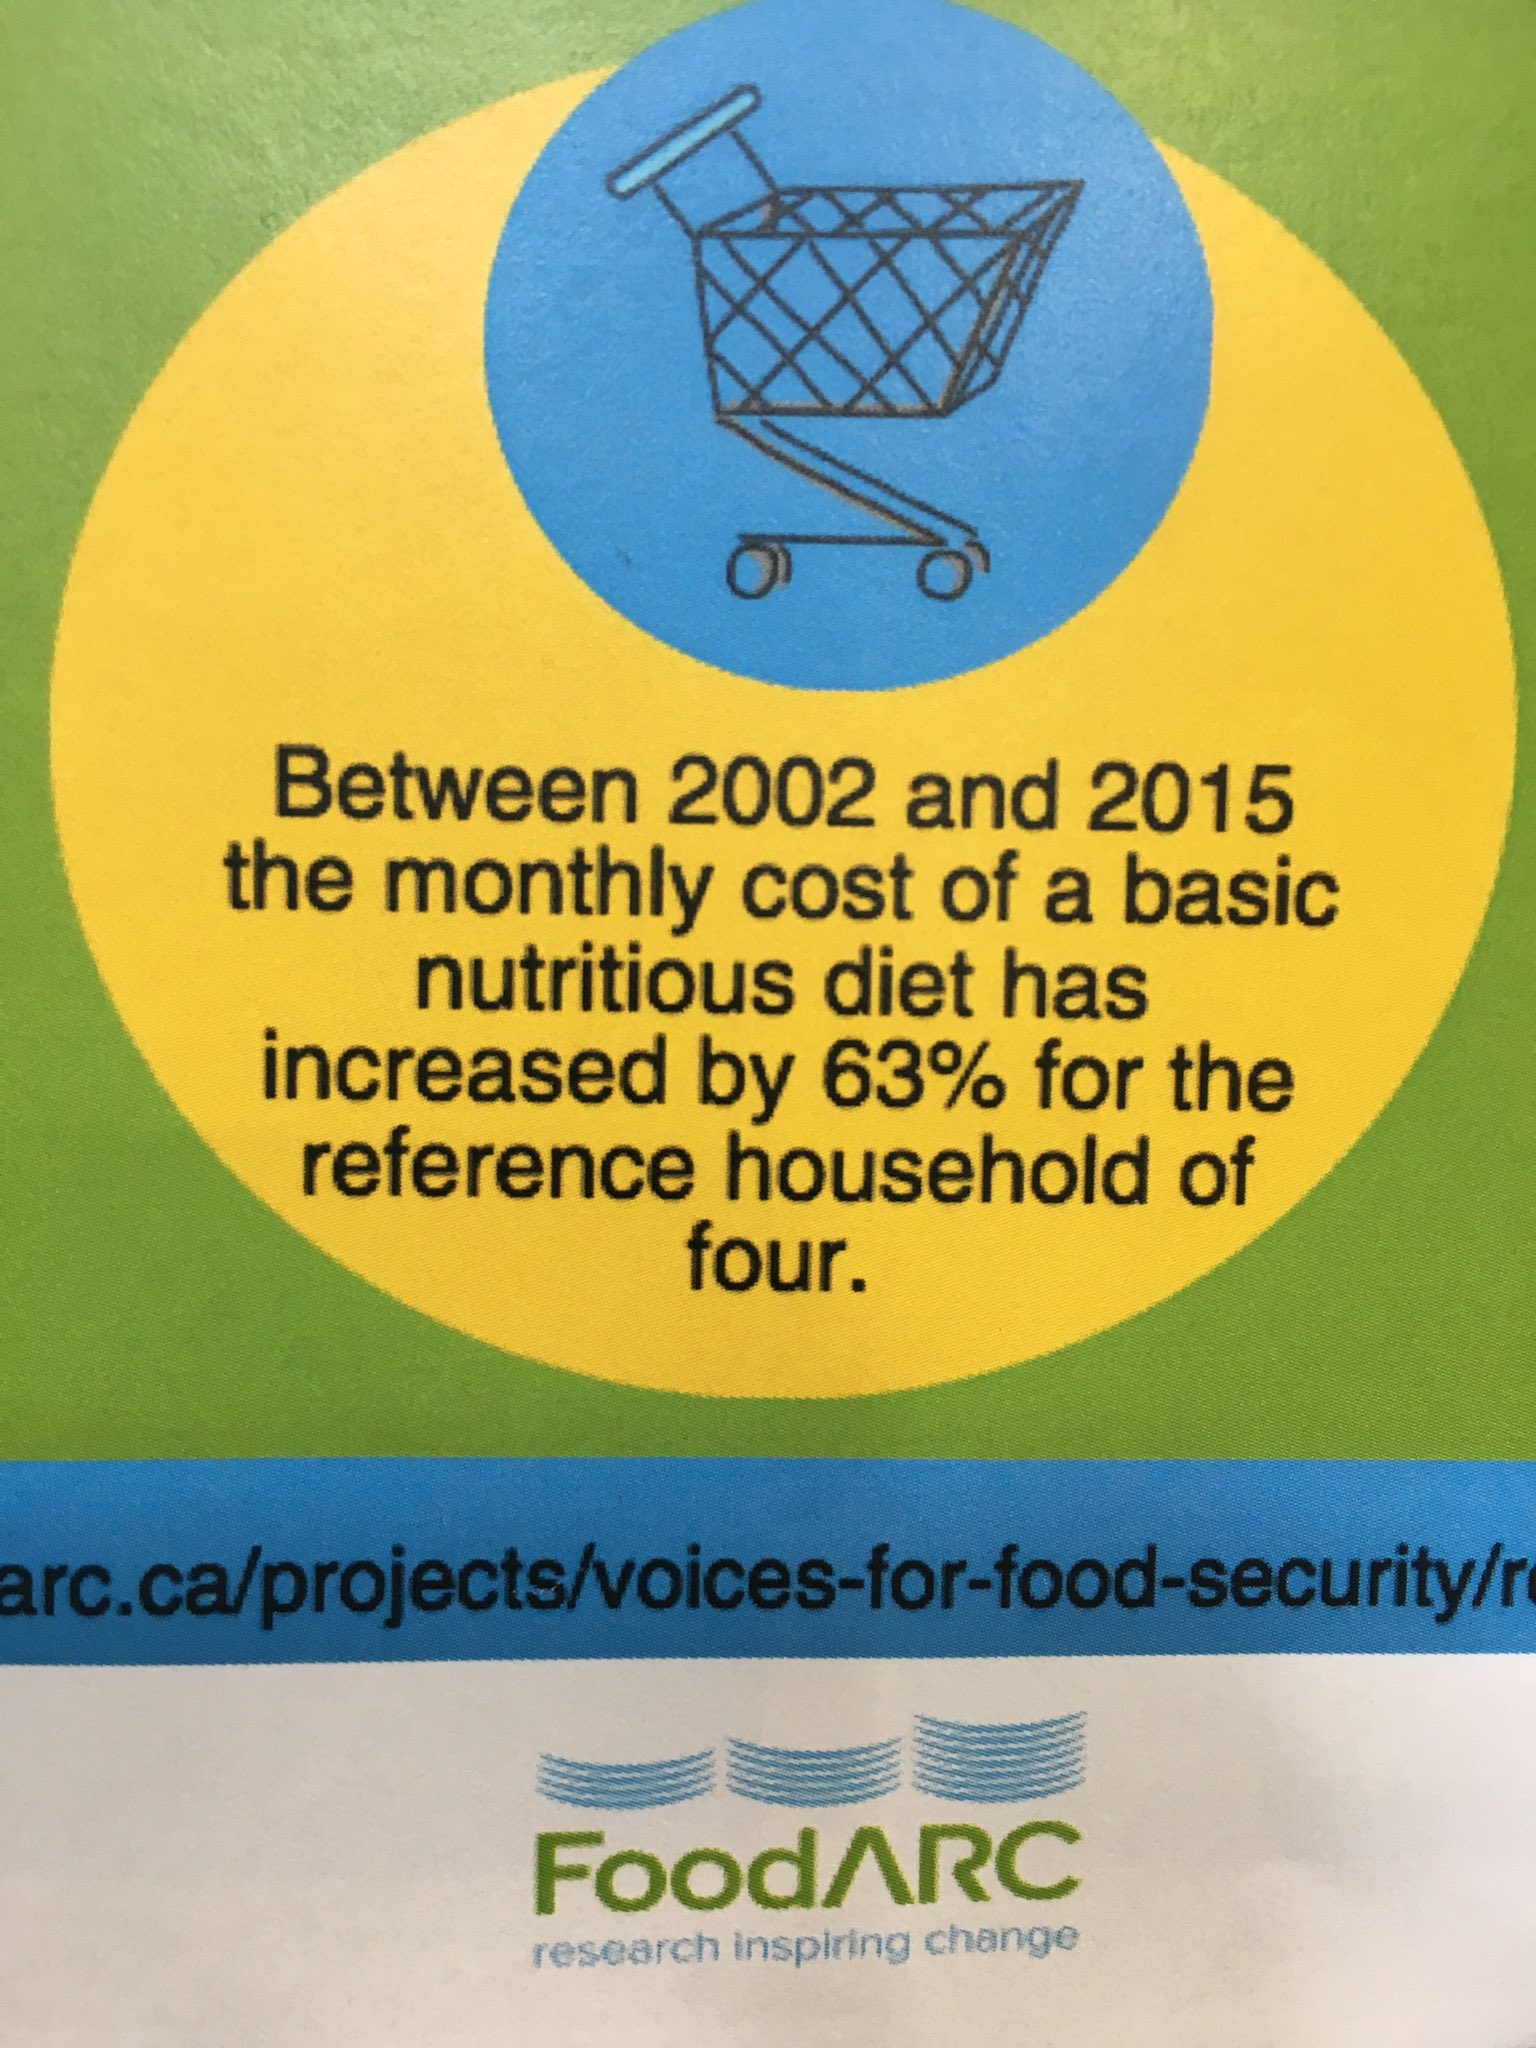 NS has highest rate of food insecurity in Canada.@FoodARC @DartmouthCFC 2015 participatory food coating report https://t.co/rUFrTwFPv5